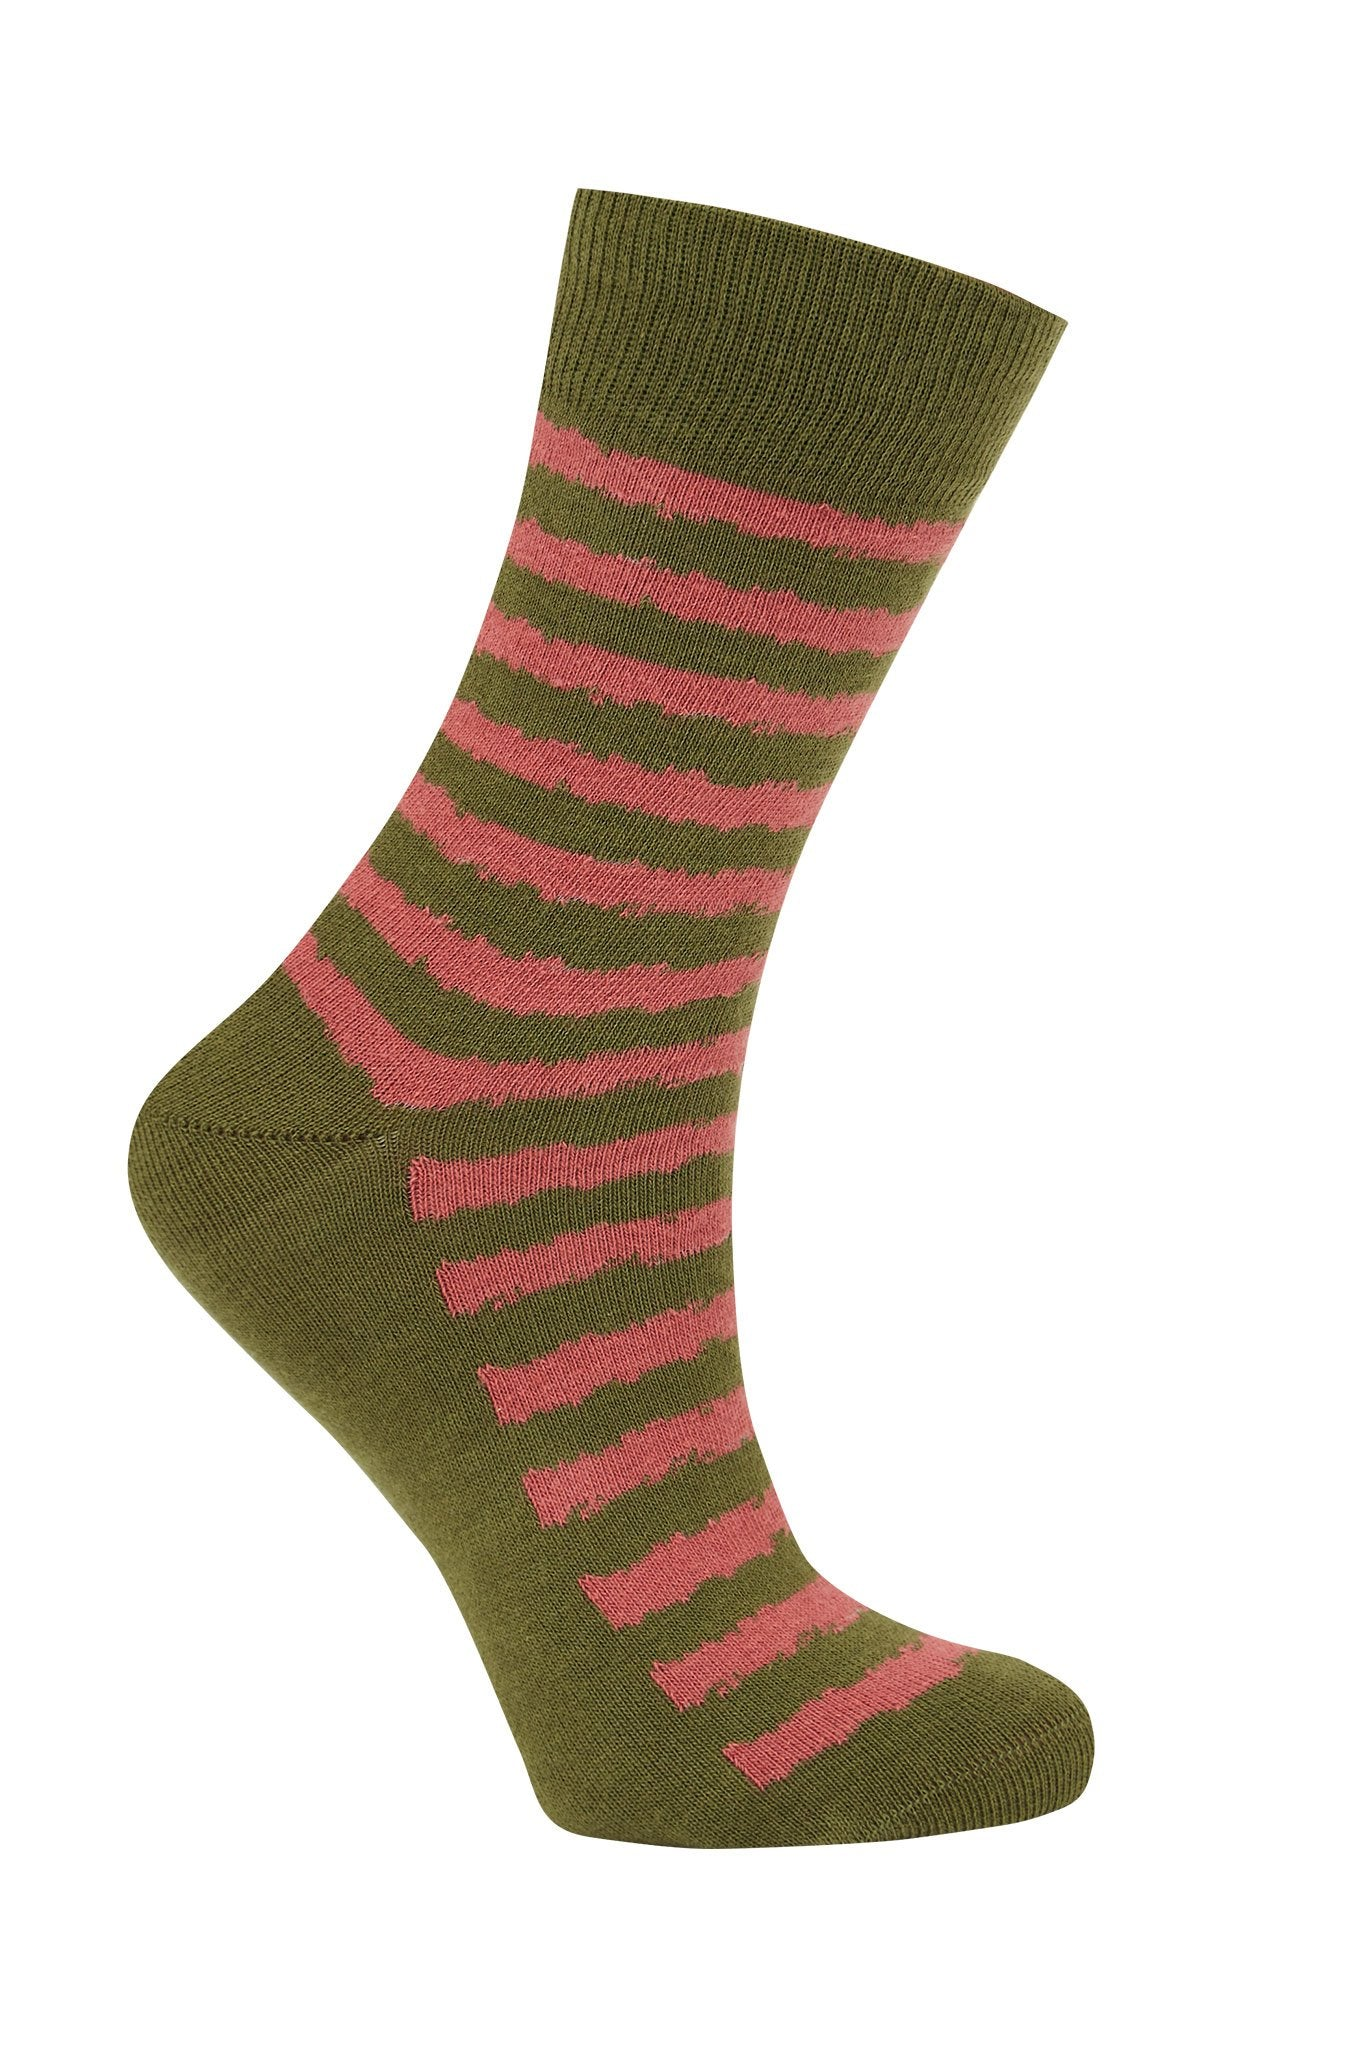 BROKEN BRETTON Olive - GOTS Organic Cotton Socks